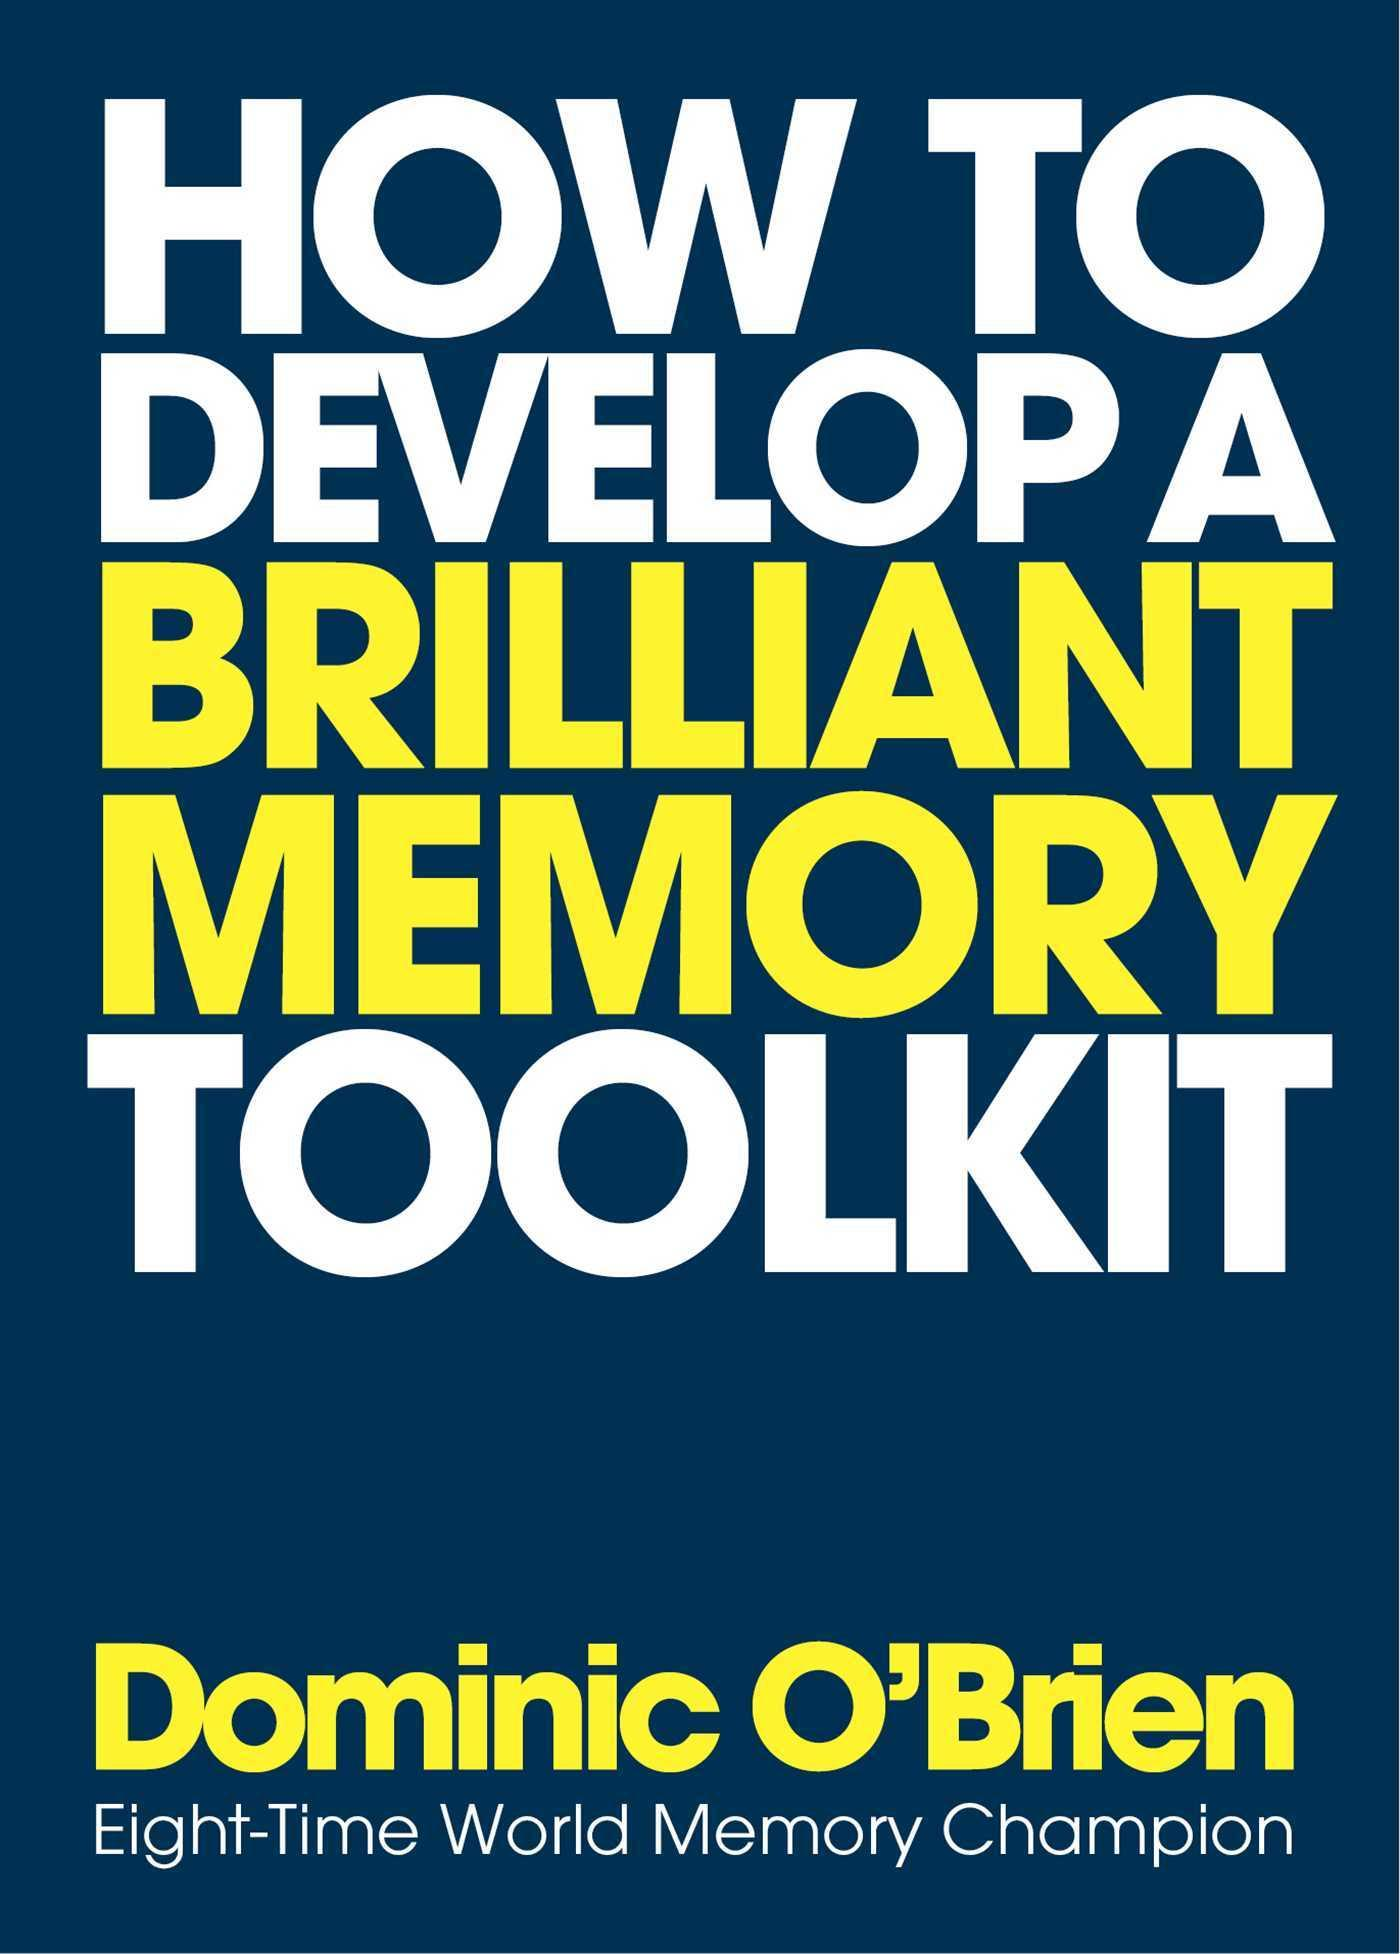 How To Develop A BrilliantMemoryToolkit